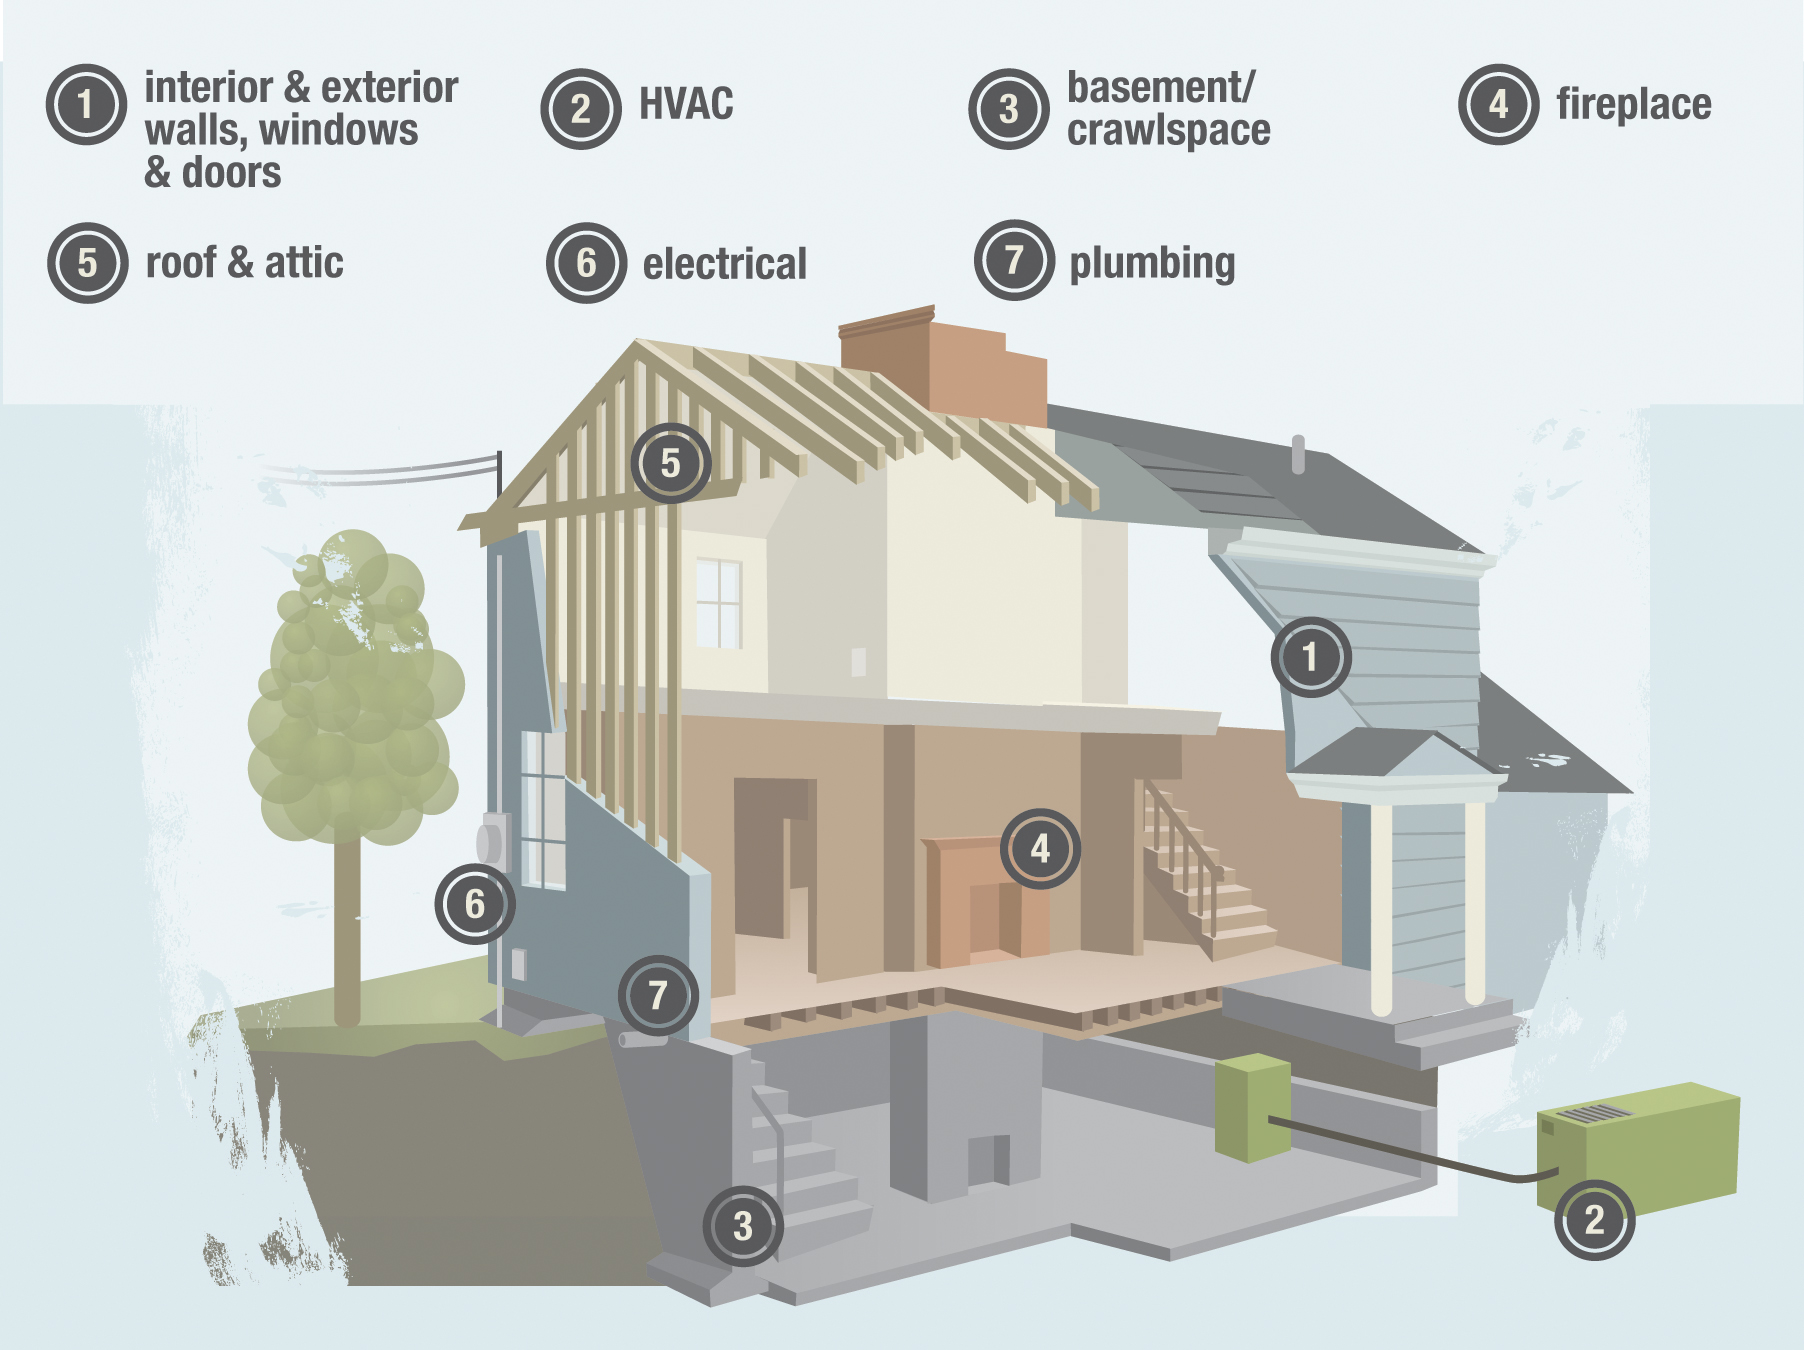 Systems and components examined in a General Home Inspection by  Clear Path Inspections